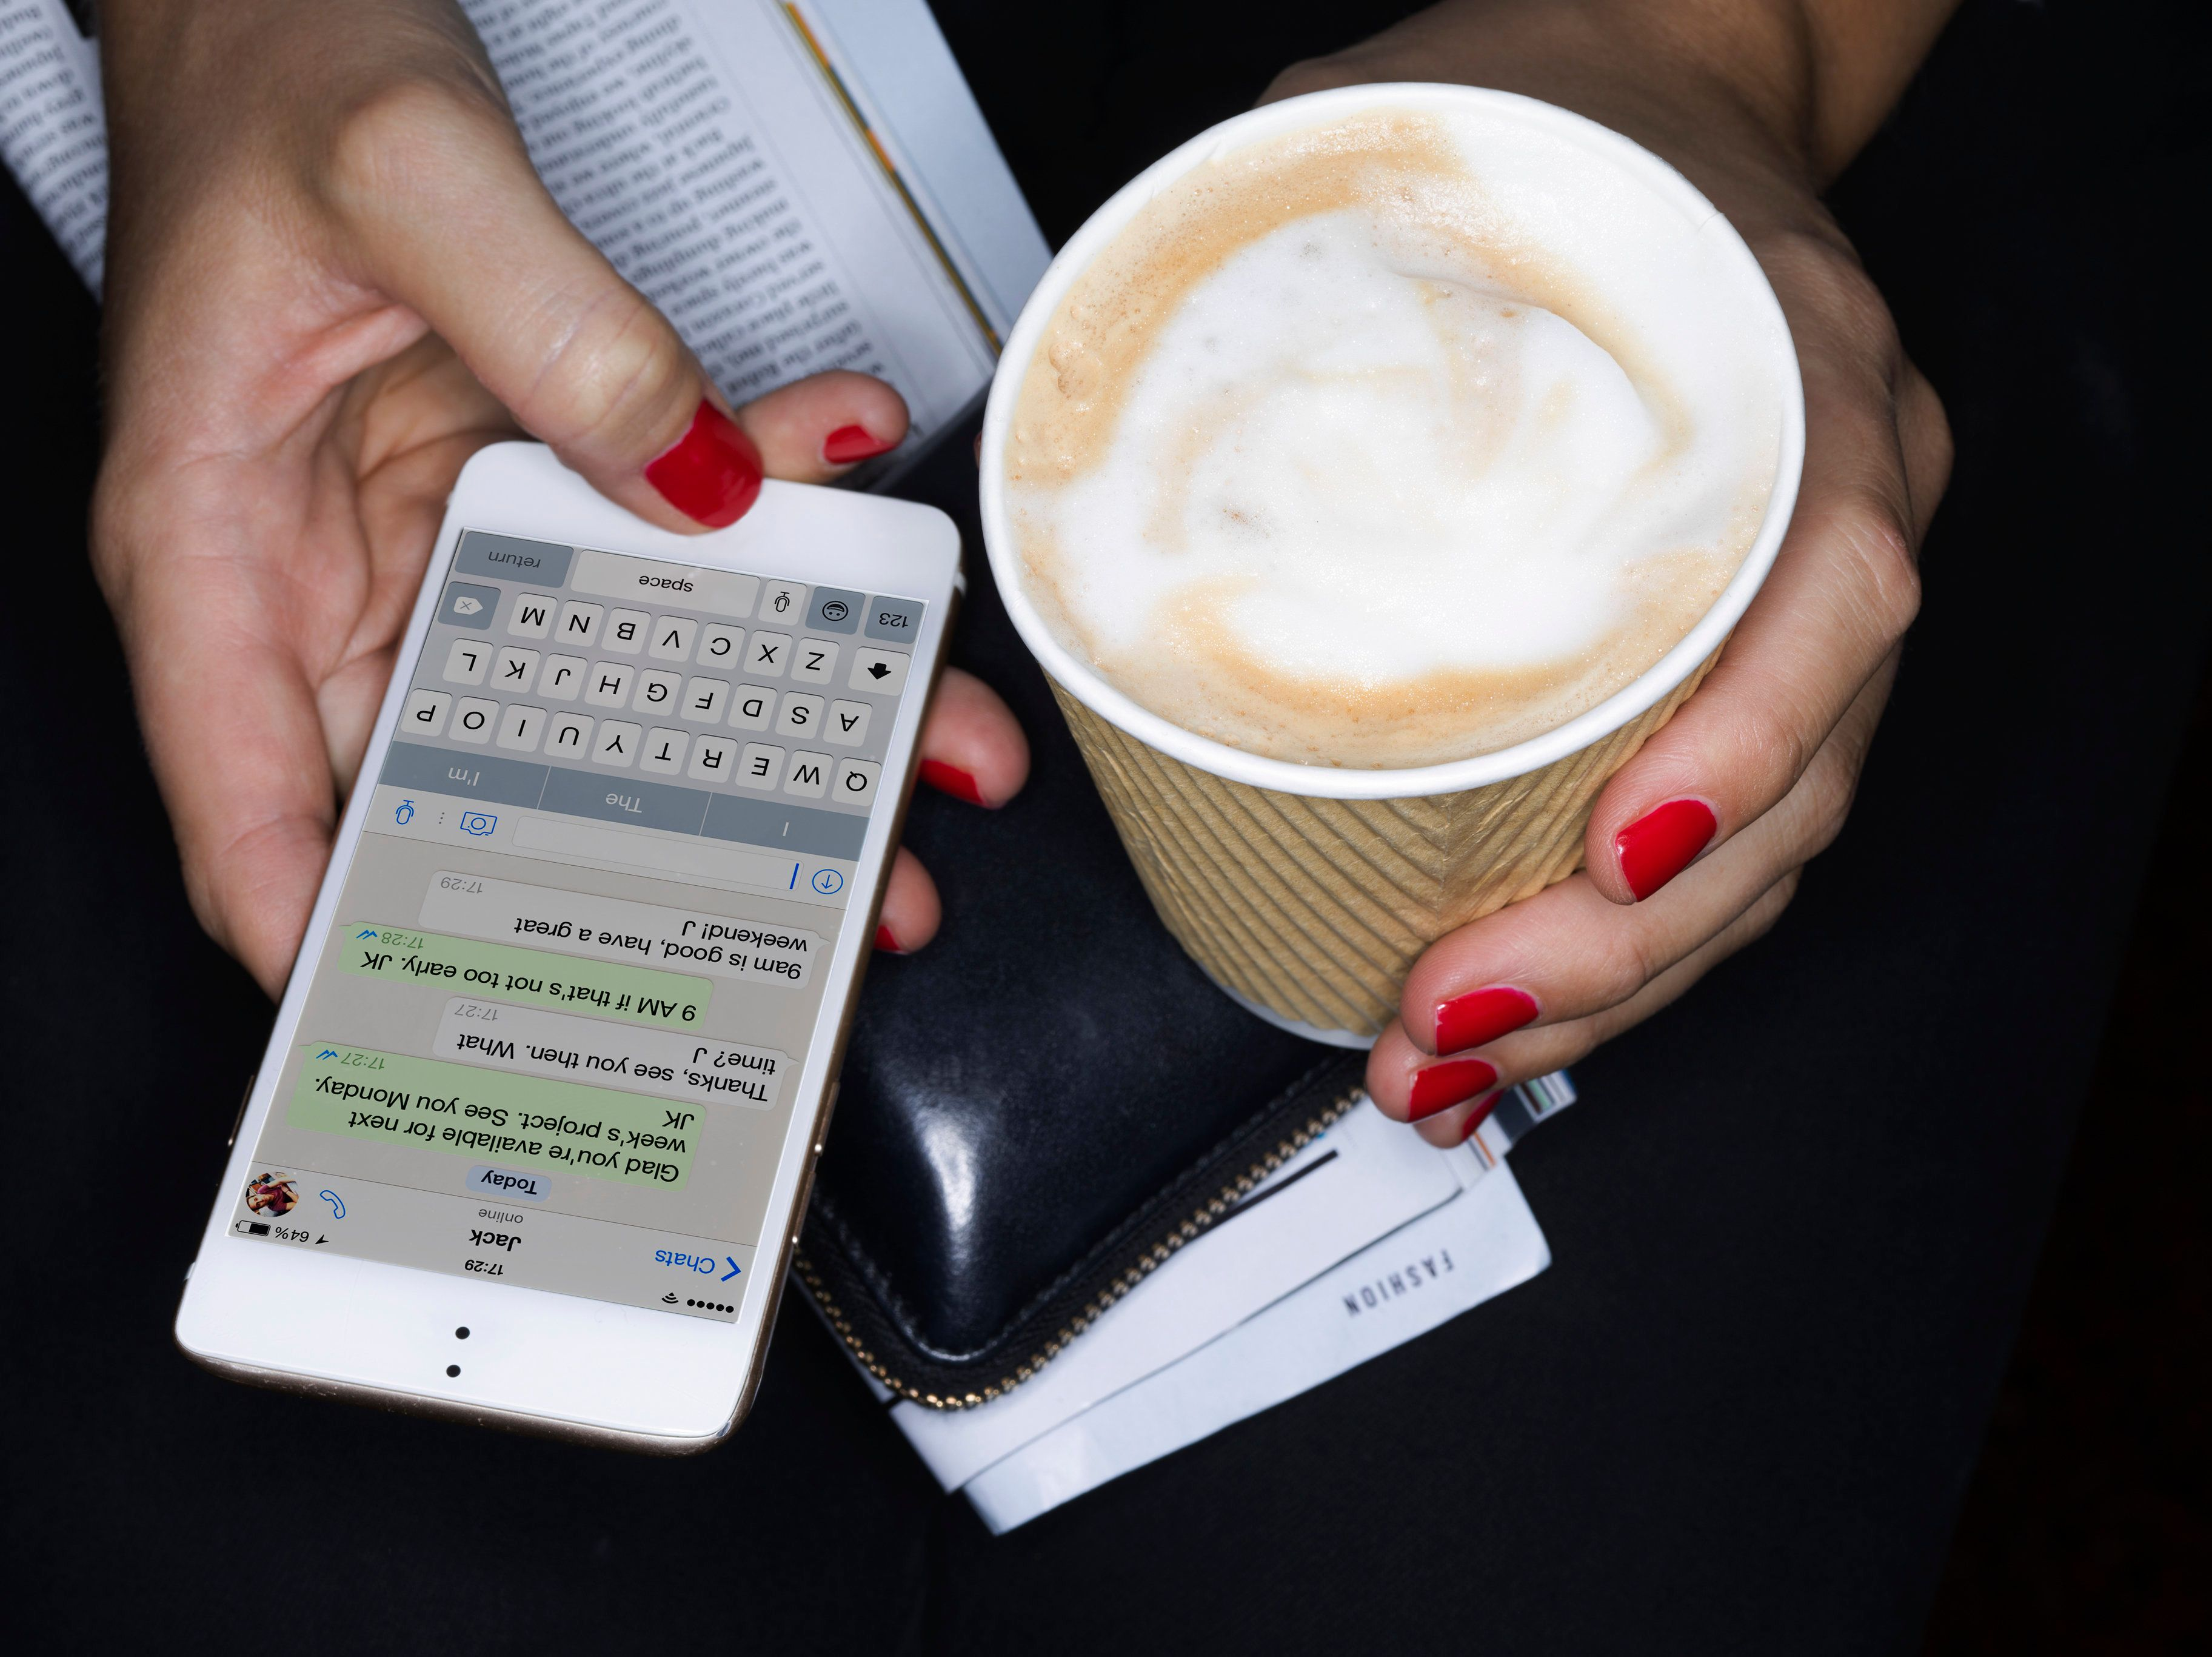 Texting may cause some people's brain waves to change